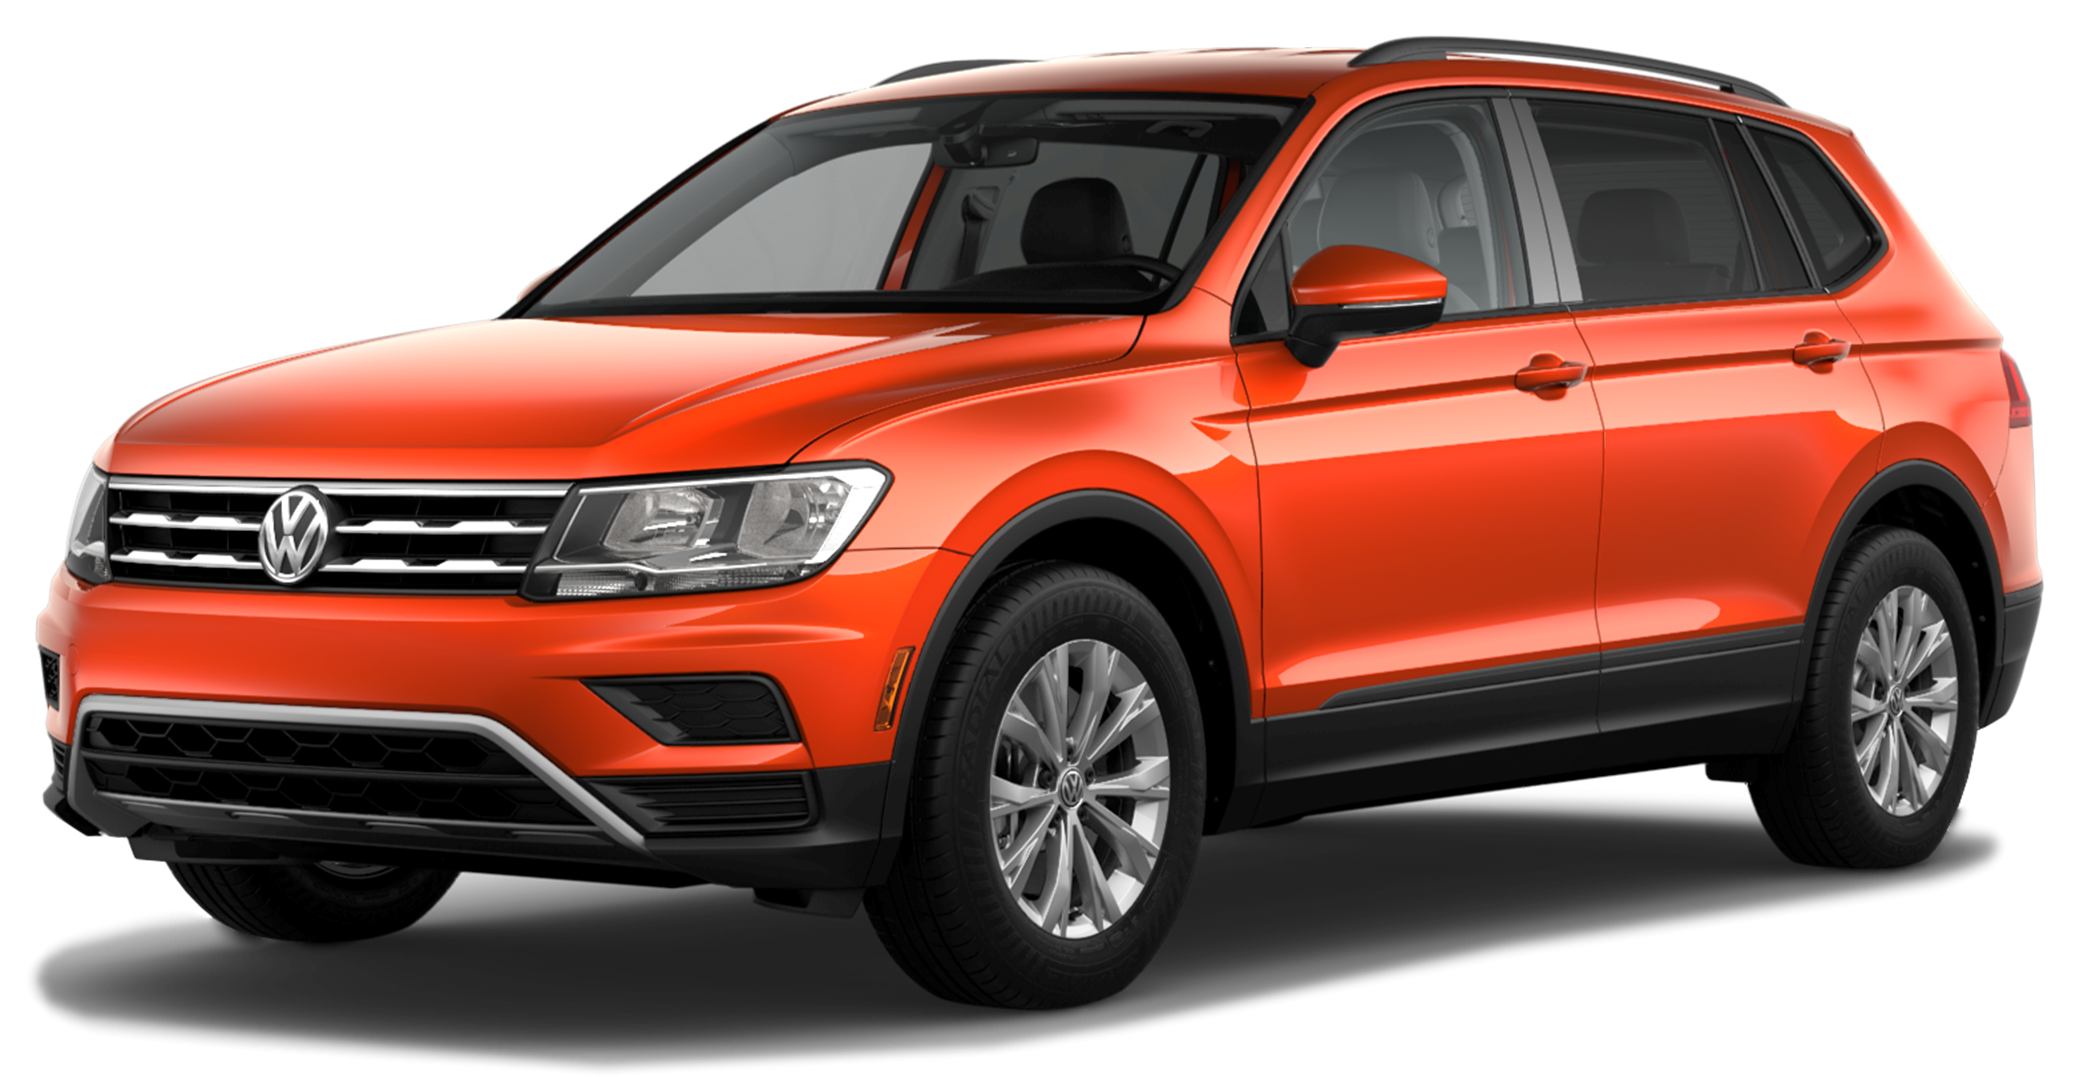 43 All New Volkswagen Pay In 2020 Offer Release Date